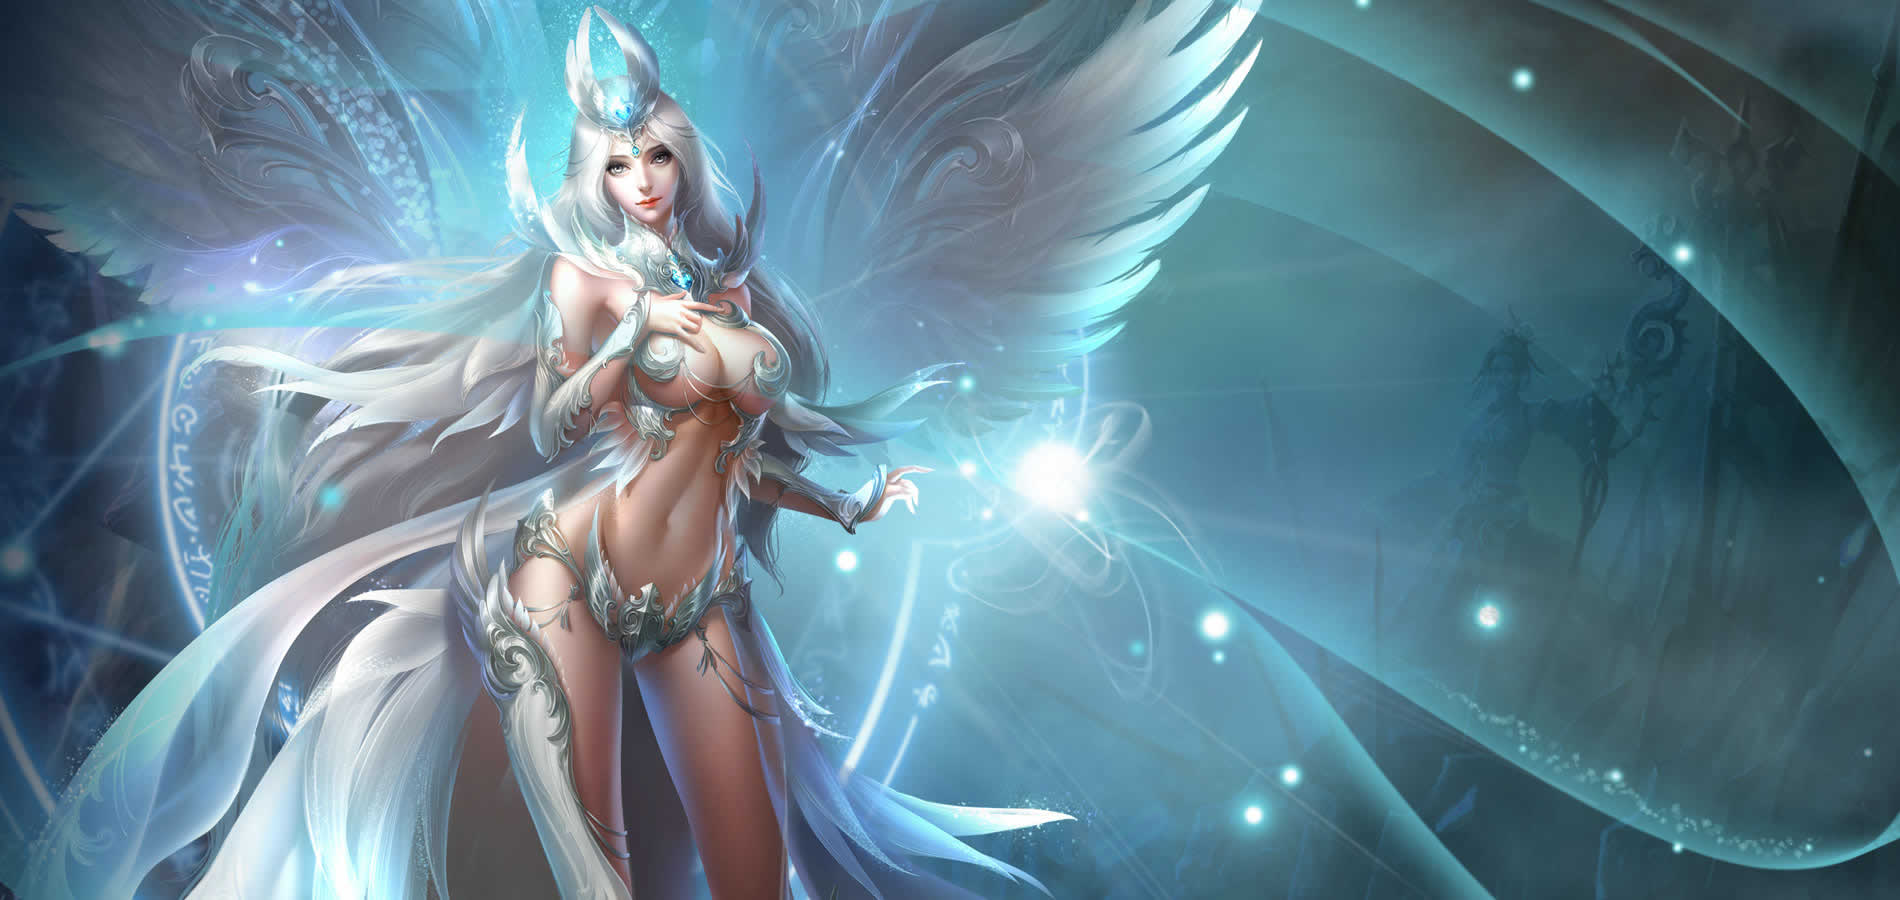 1900x900 - League Of Angels HD Wallpapers 23